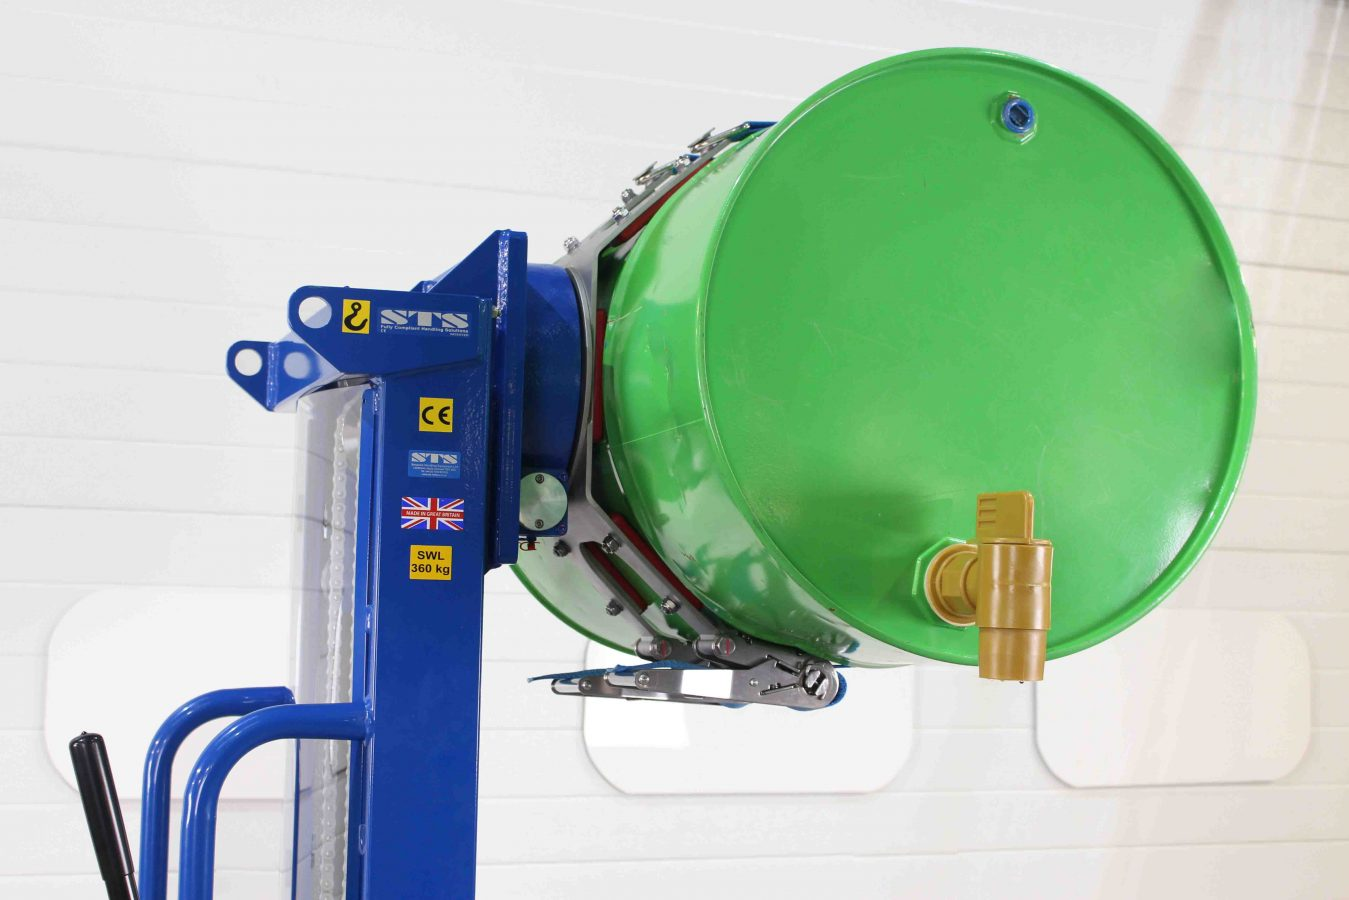 Manual side drum lifter rotator suitable for tipping drums horizontally.